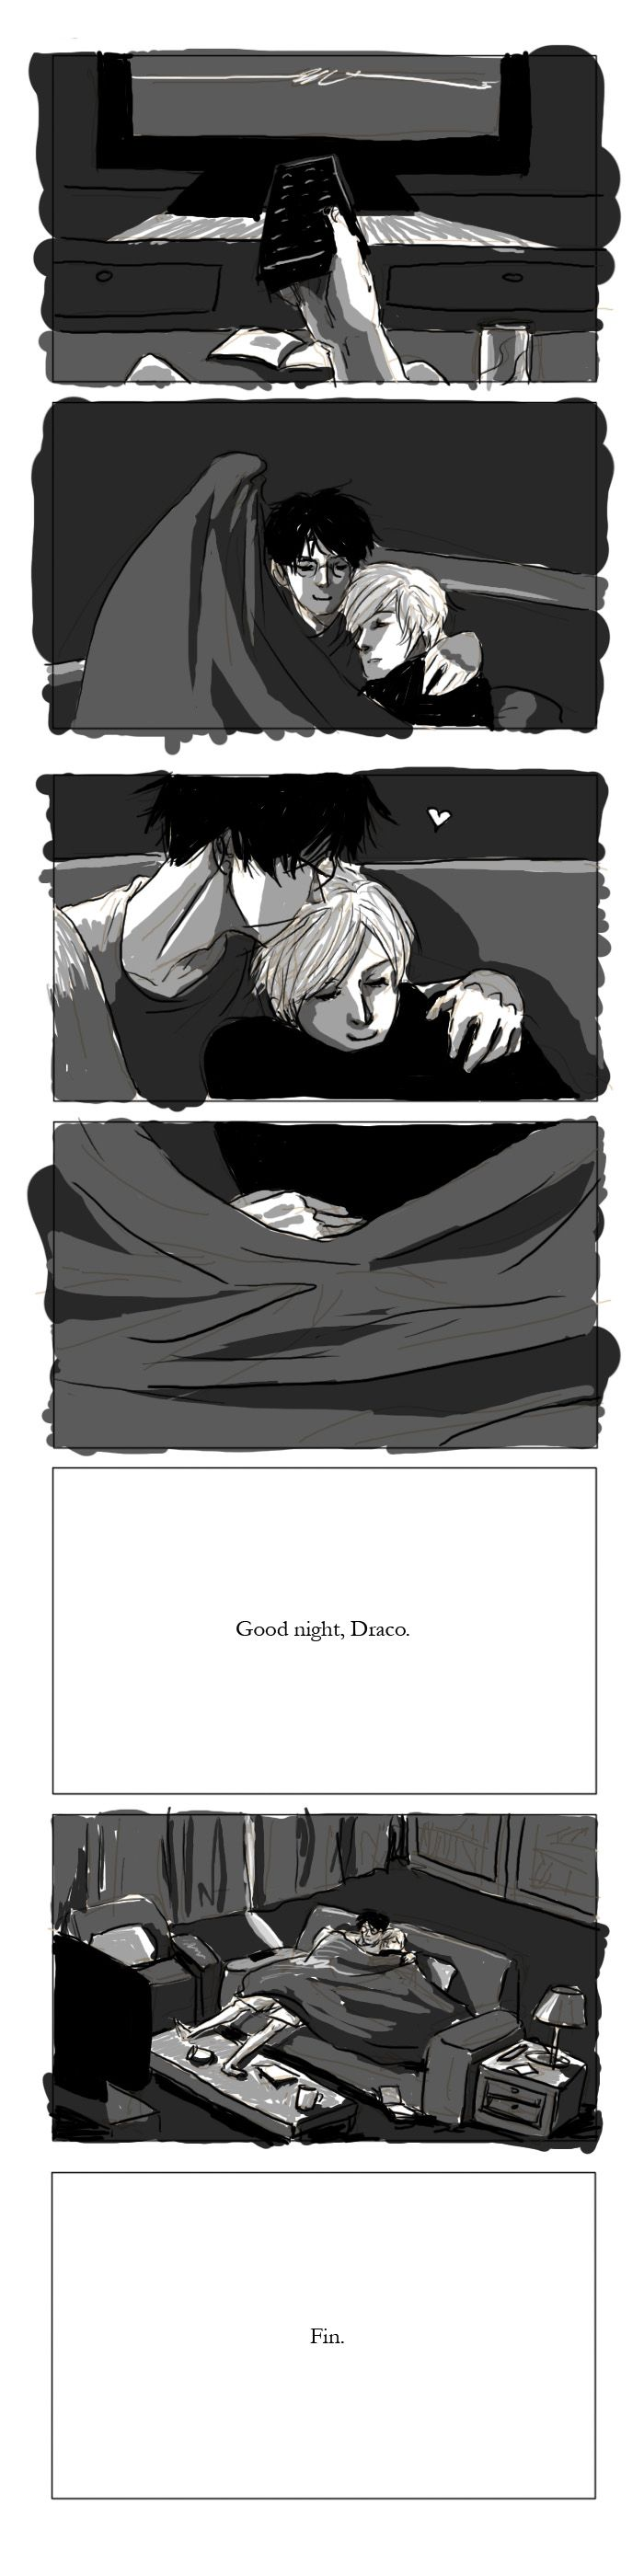 Good Night, Draco - Part II by alteregopi.deviantart.com on @DeviantArt